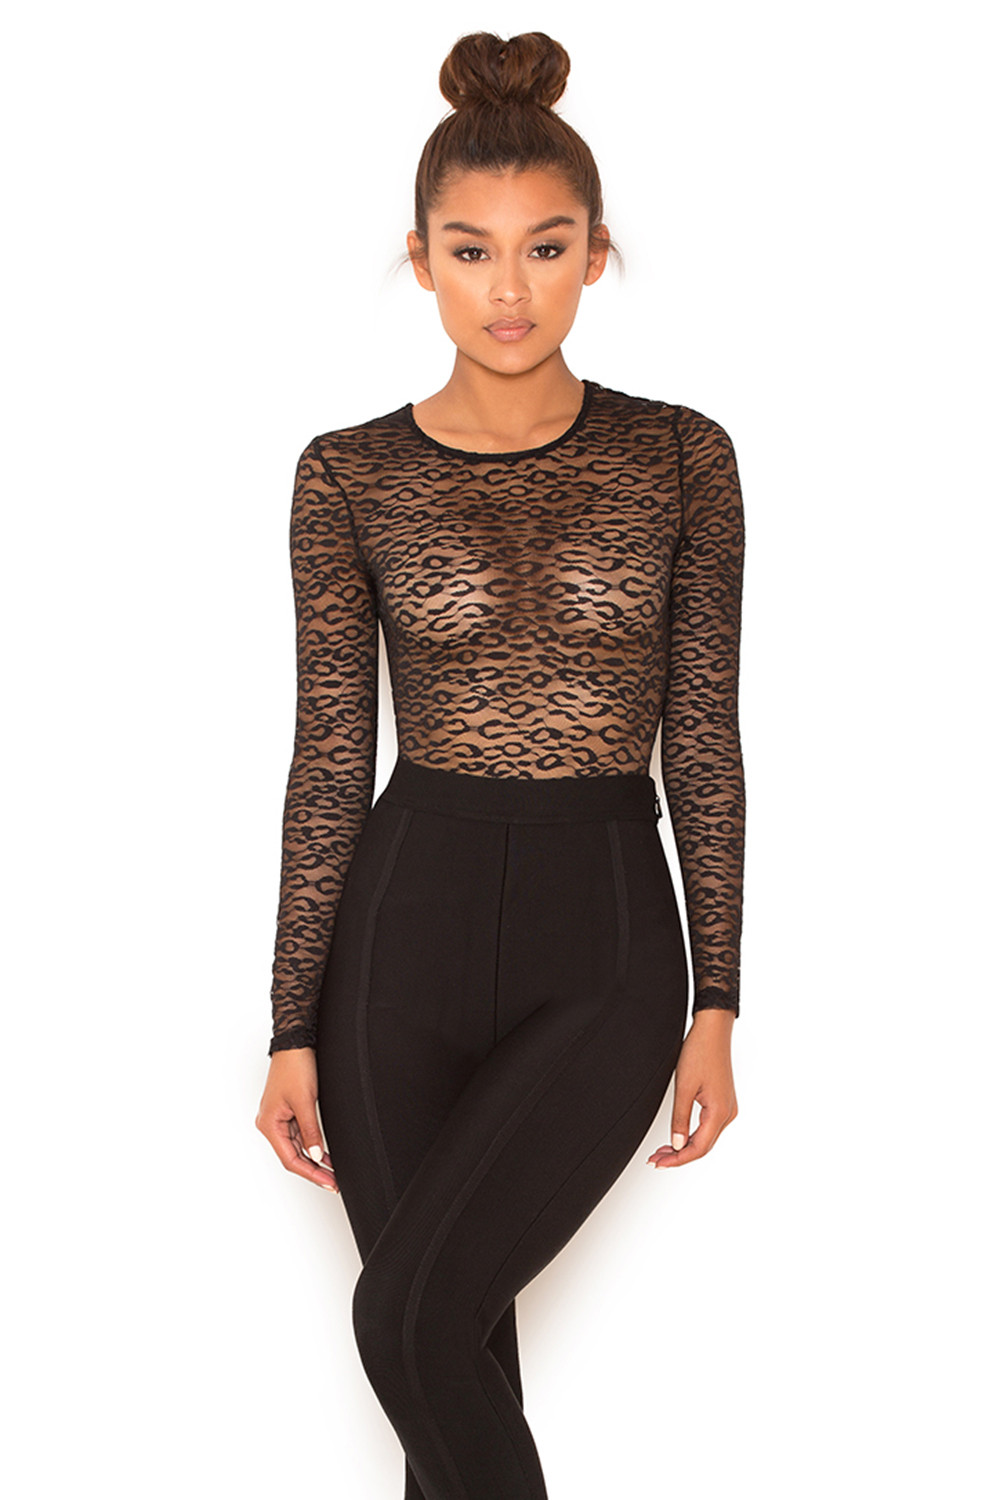 Elegant Long Sleeve Dress Keyhole Lace Dress Cotton Blend Dress Black Lace Long Dress Elastic Long Sleeve Dress Blue Medium Dress Elastic Waist Sleeve Dress Long Sleeve Pink Mini Dress Long sleeve dresses are perfect for add a touch of sophistication to your wardrobe.